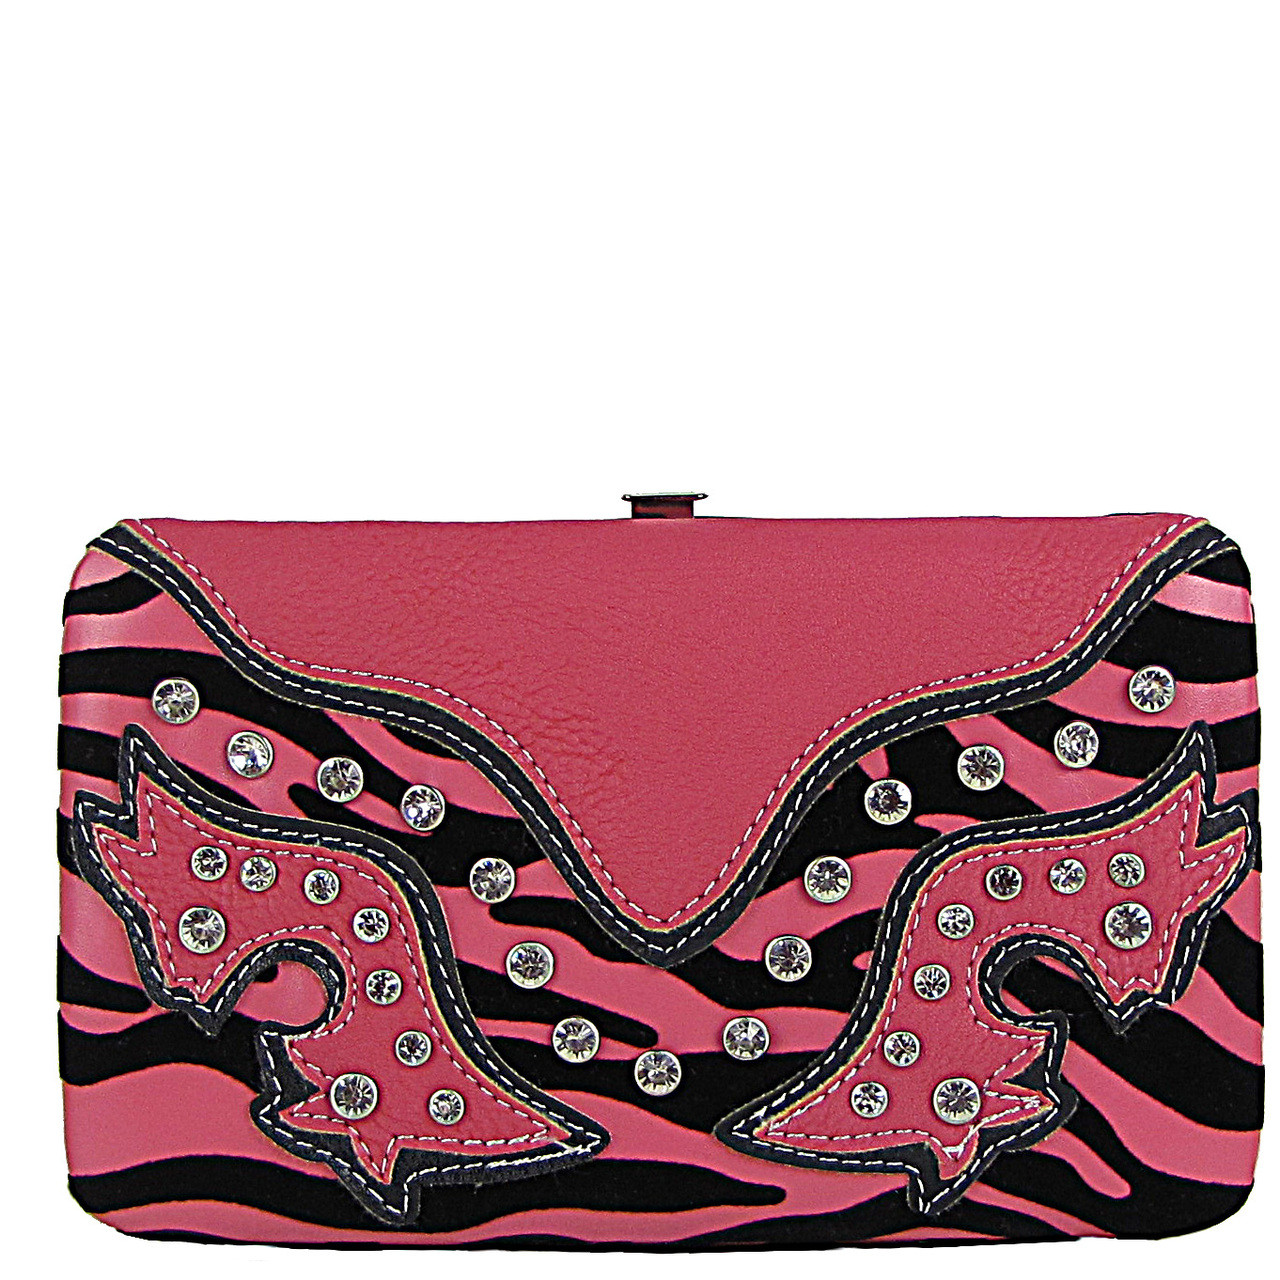 BLACK/HOT PINK ZEBRA STUDDED RHINESTONE LOOK FLAT THICK WALLET FW2-12105BHP